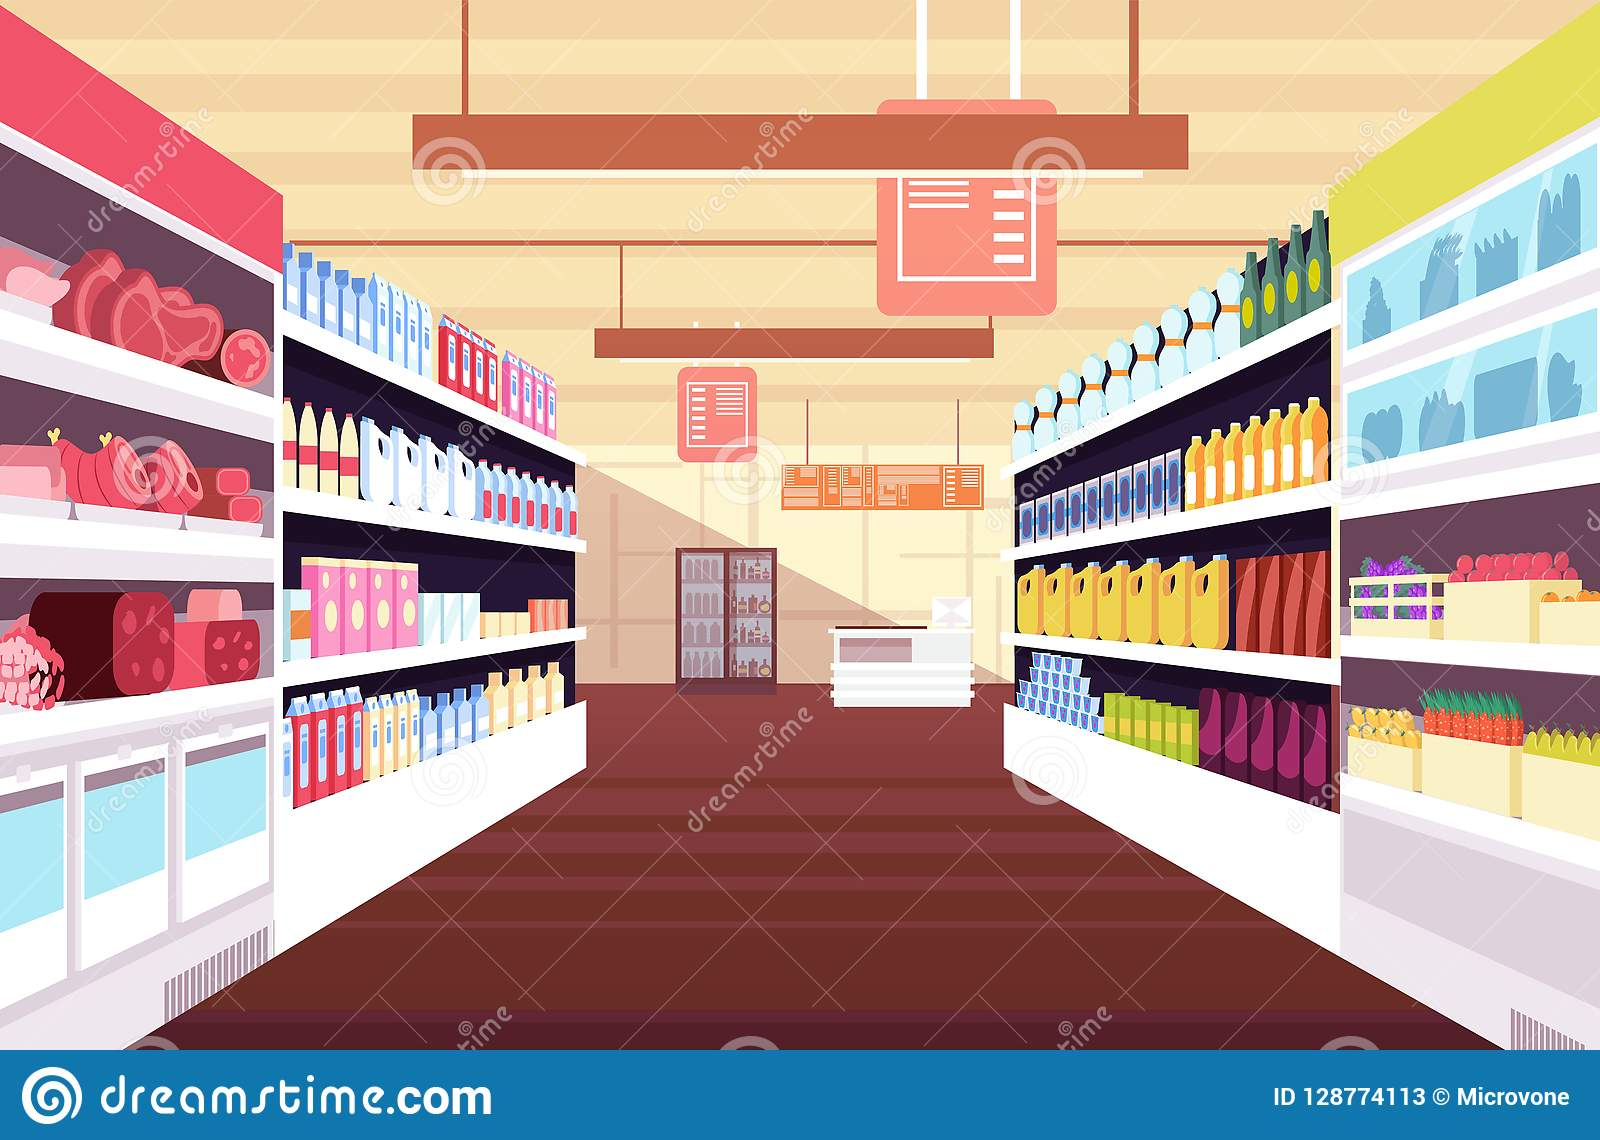 Grocery supermarket interior with full product shelves. Retail and consumerism vector concept